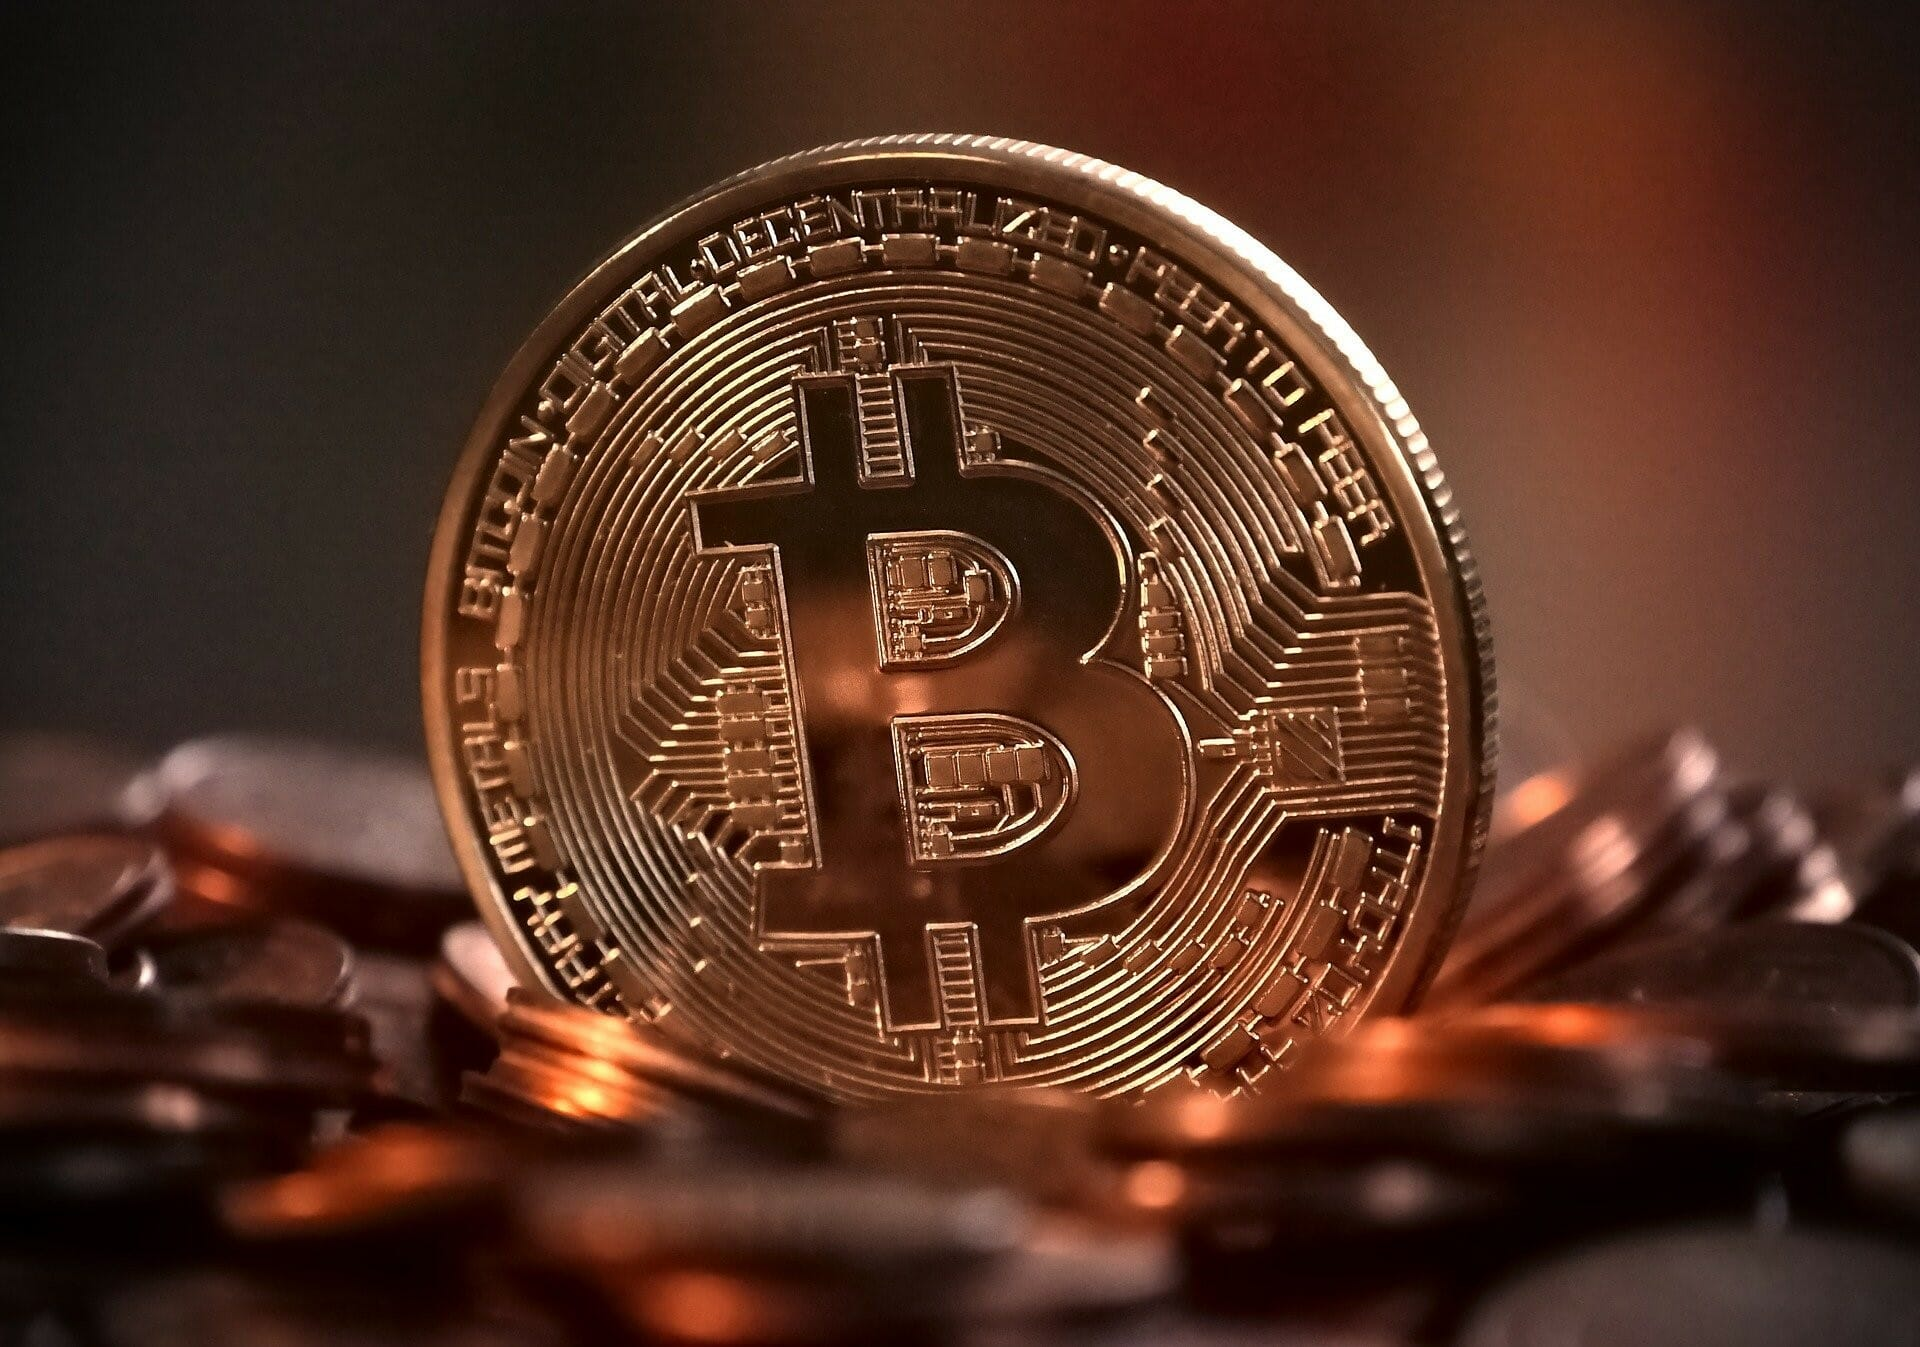 Bitcoin what is it?